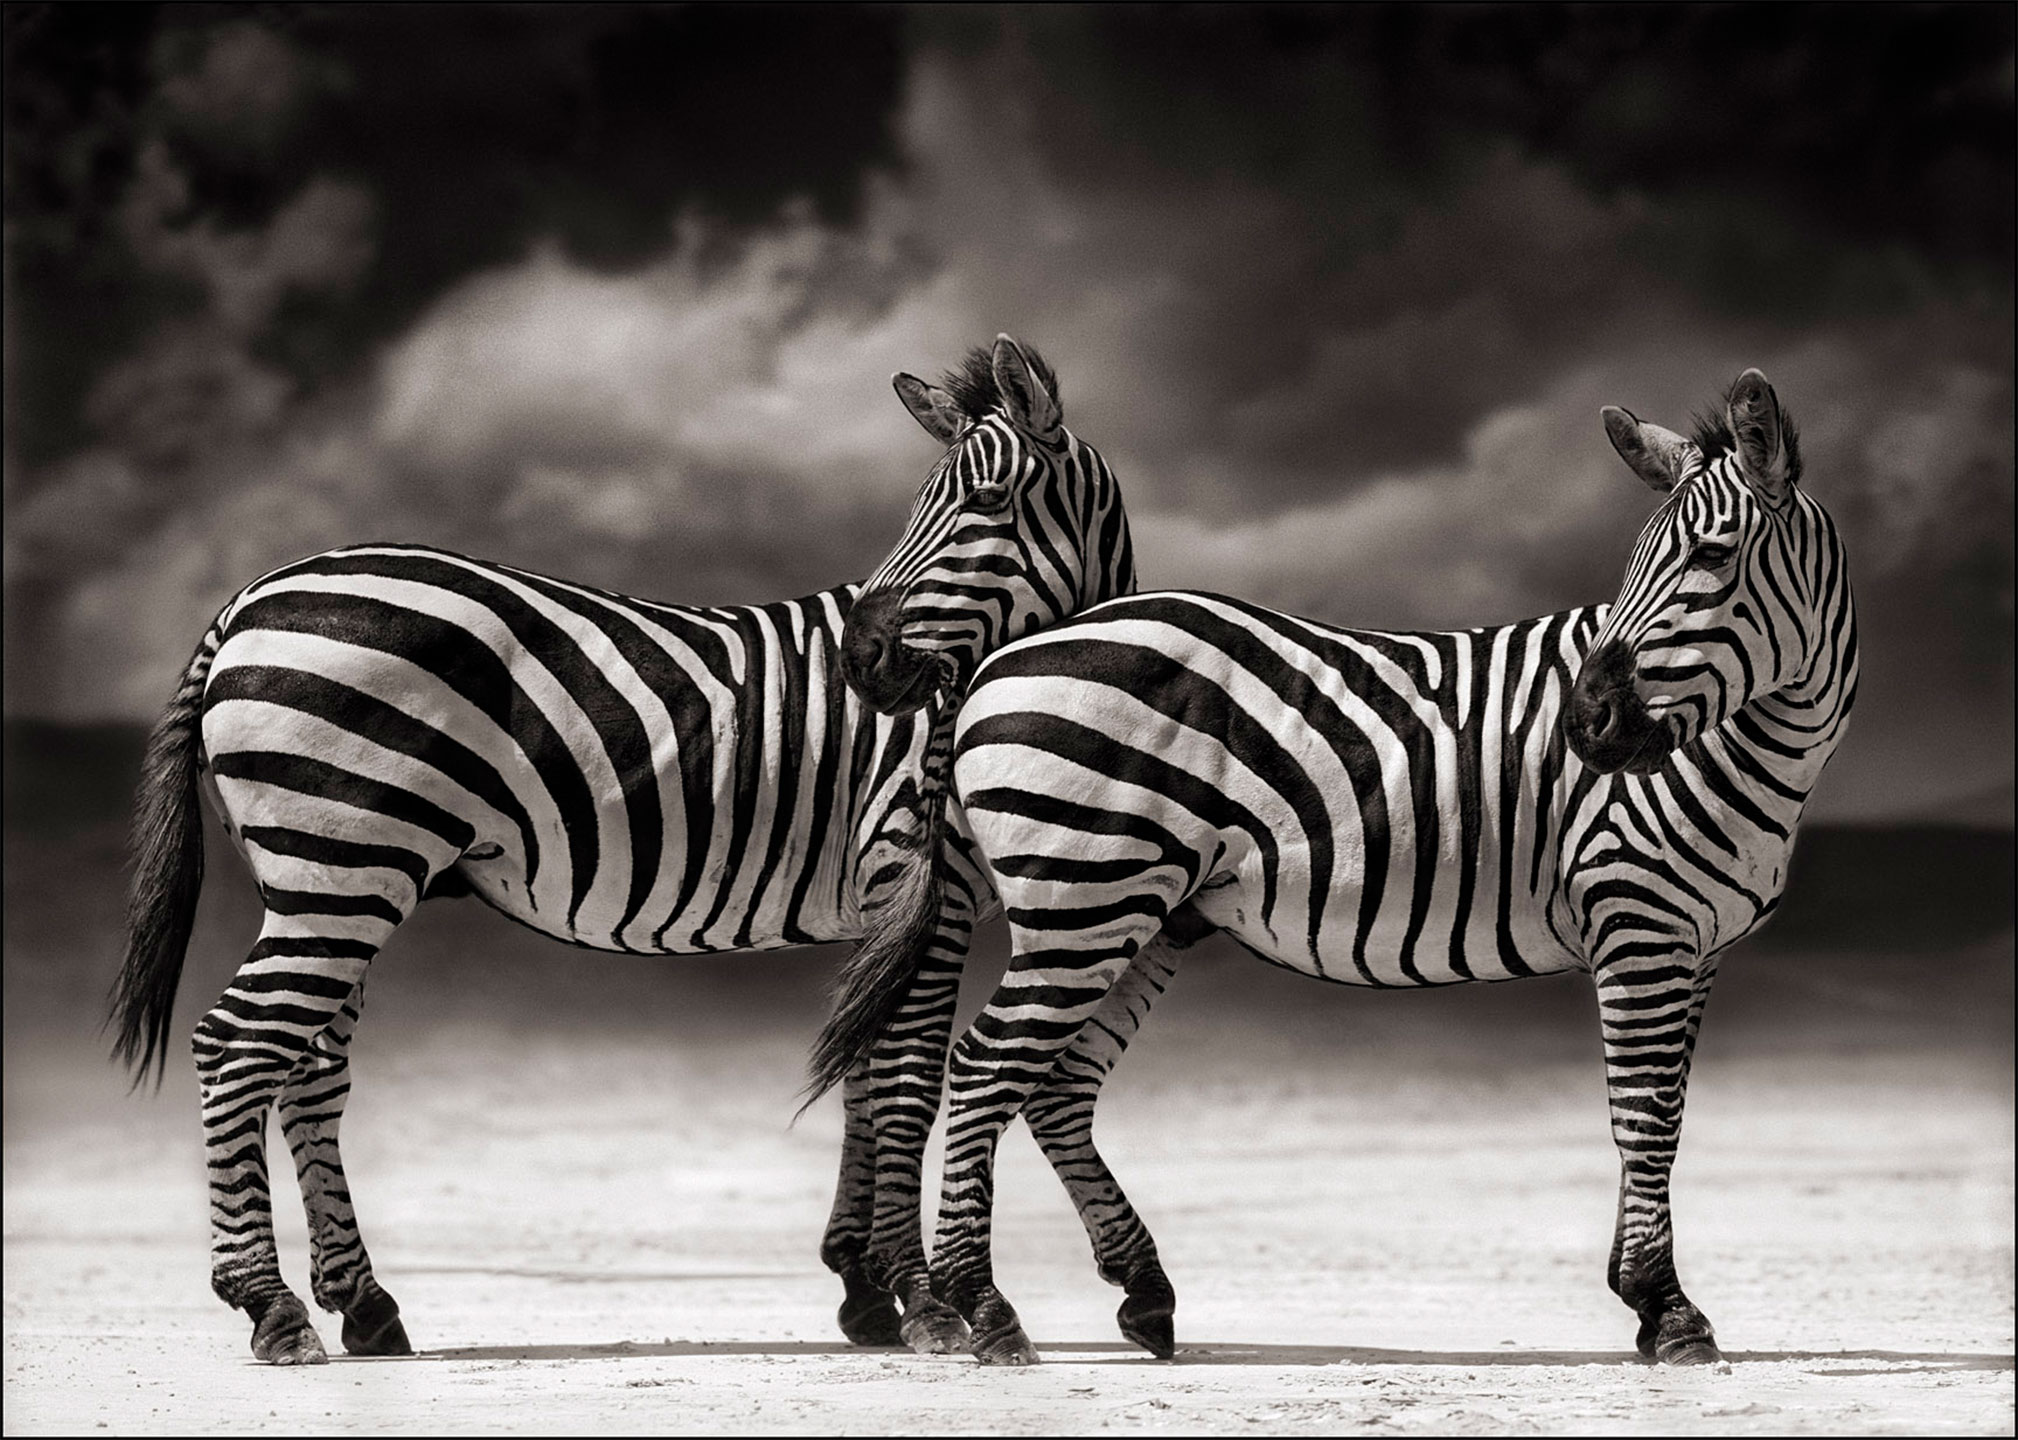 AG_Artist_NickBrandt_PreviousWork_10